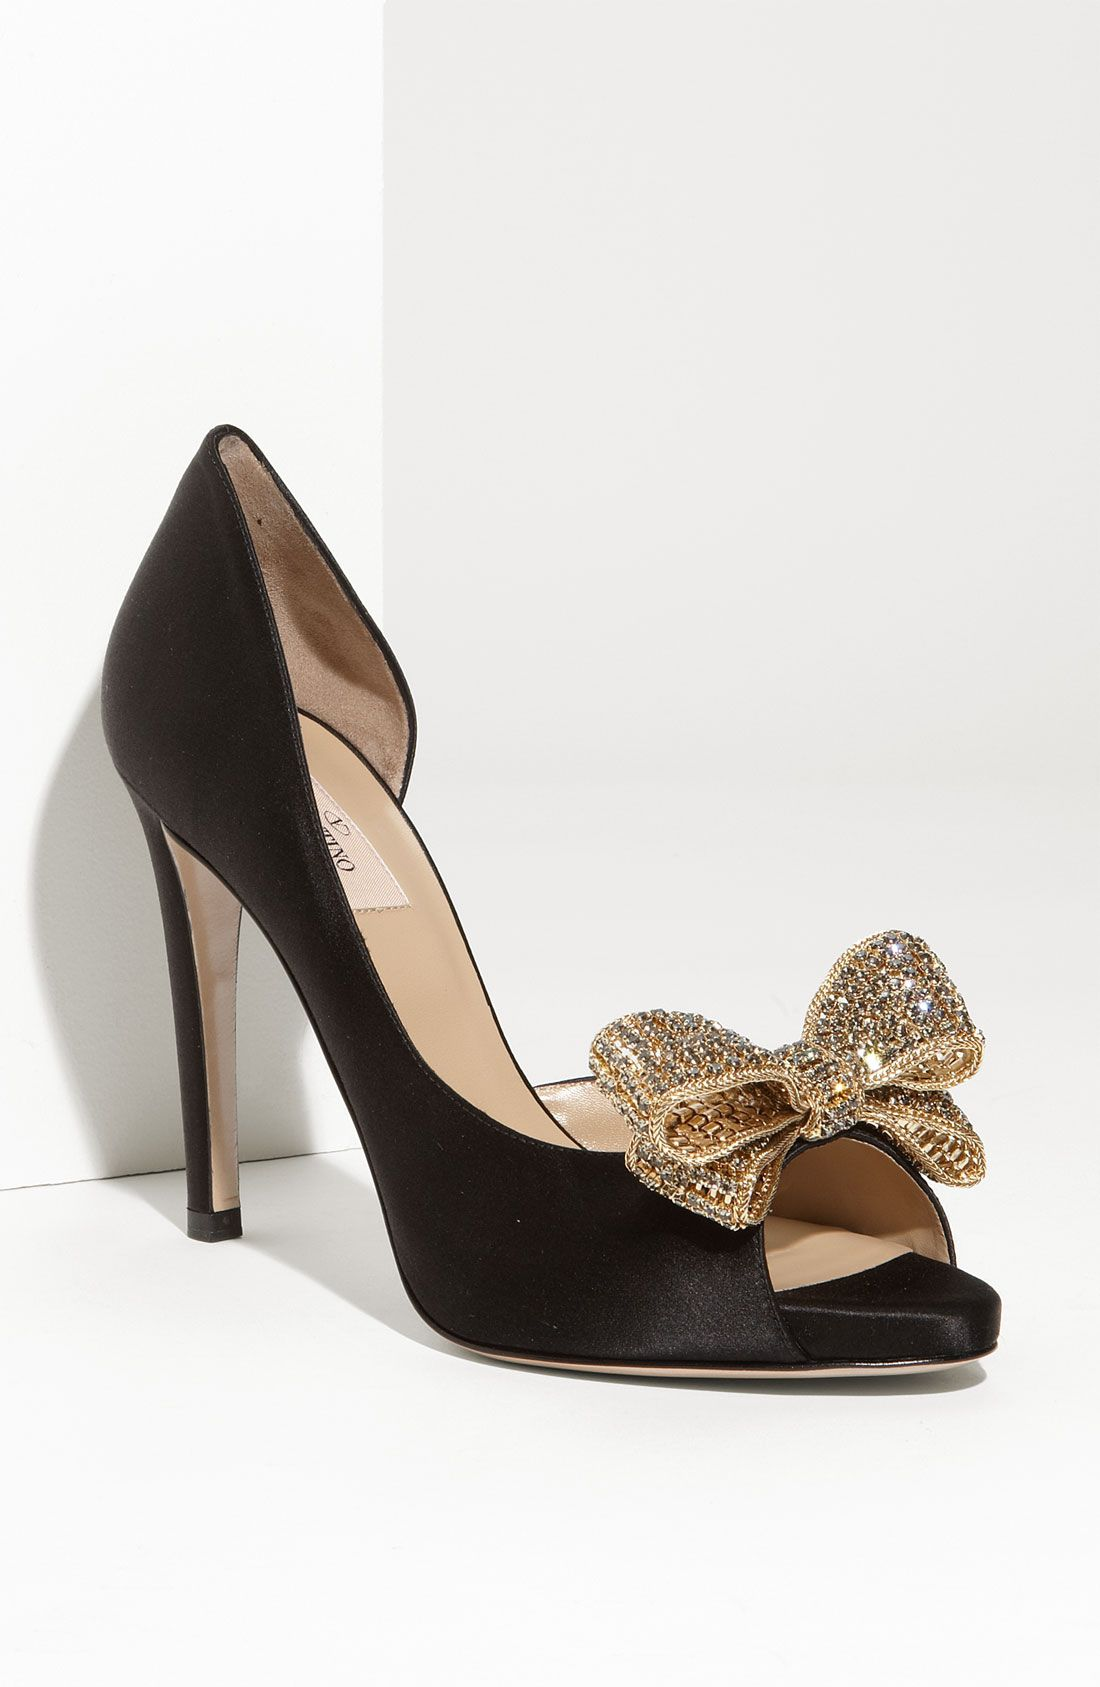 b415937d5e4c7 This black satin and sparkling crystal bow Valentino pump is perfection.